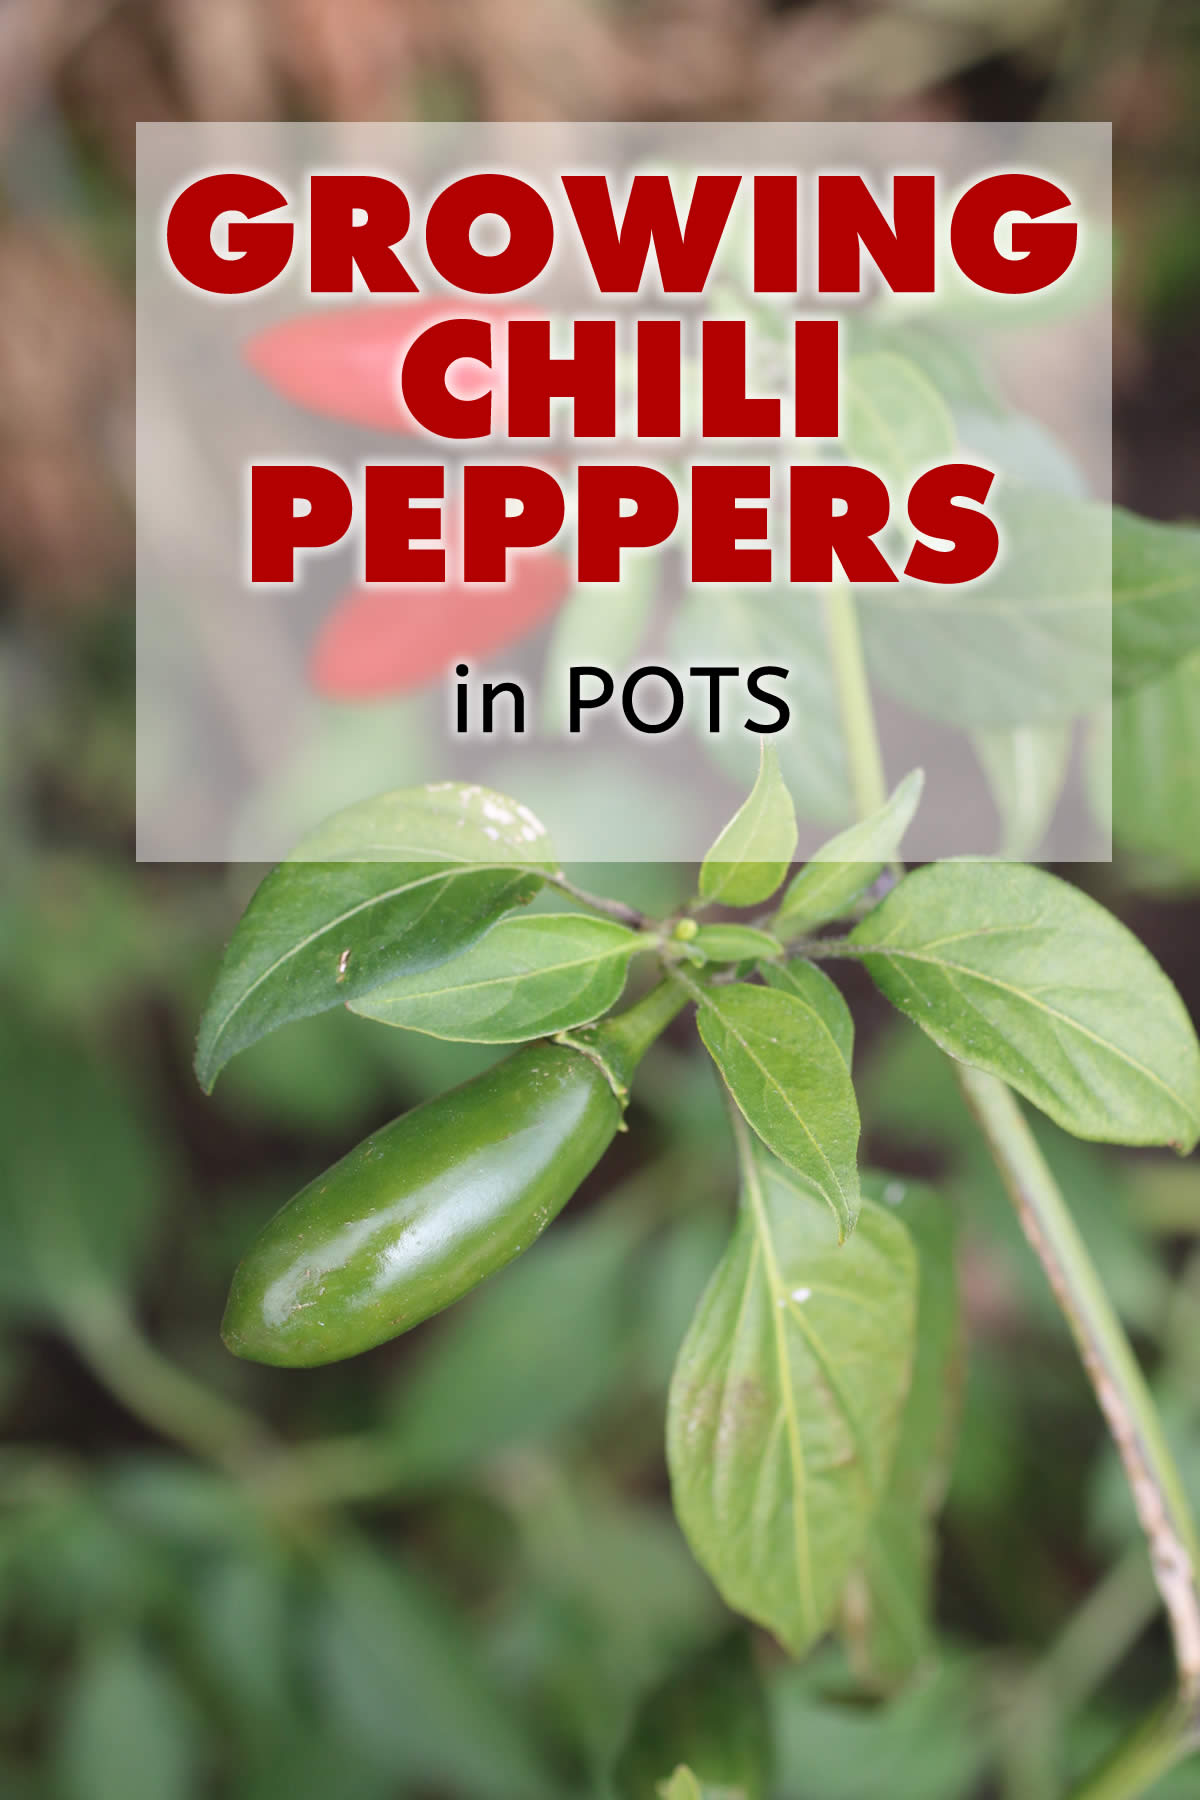 How to Grow Chili Pepper Plants in Pots